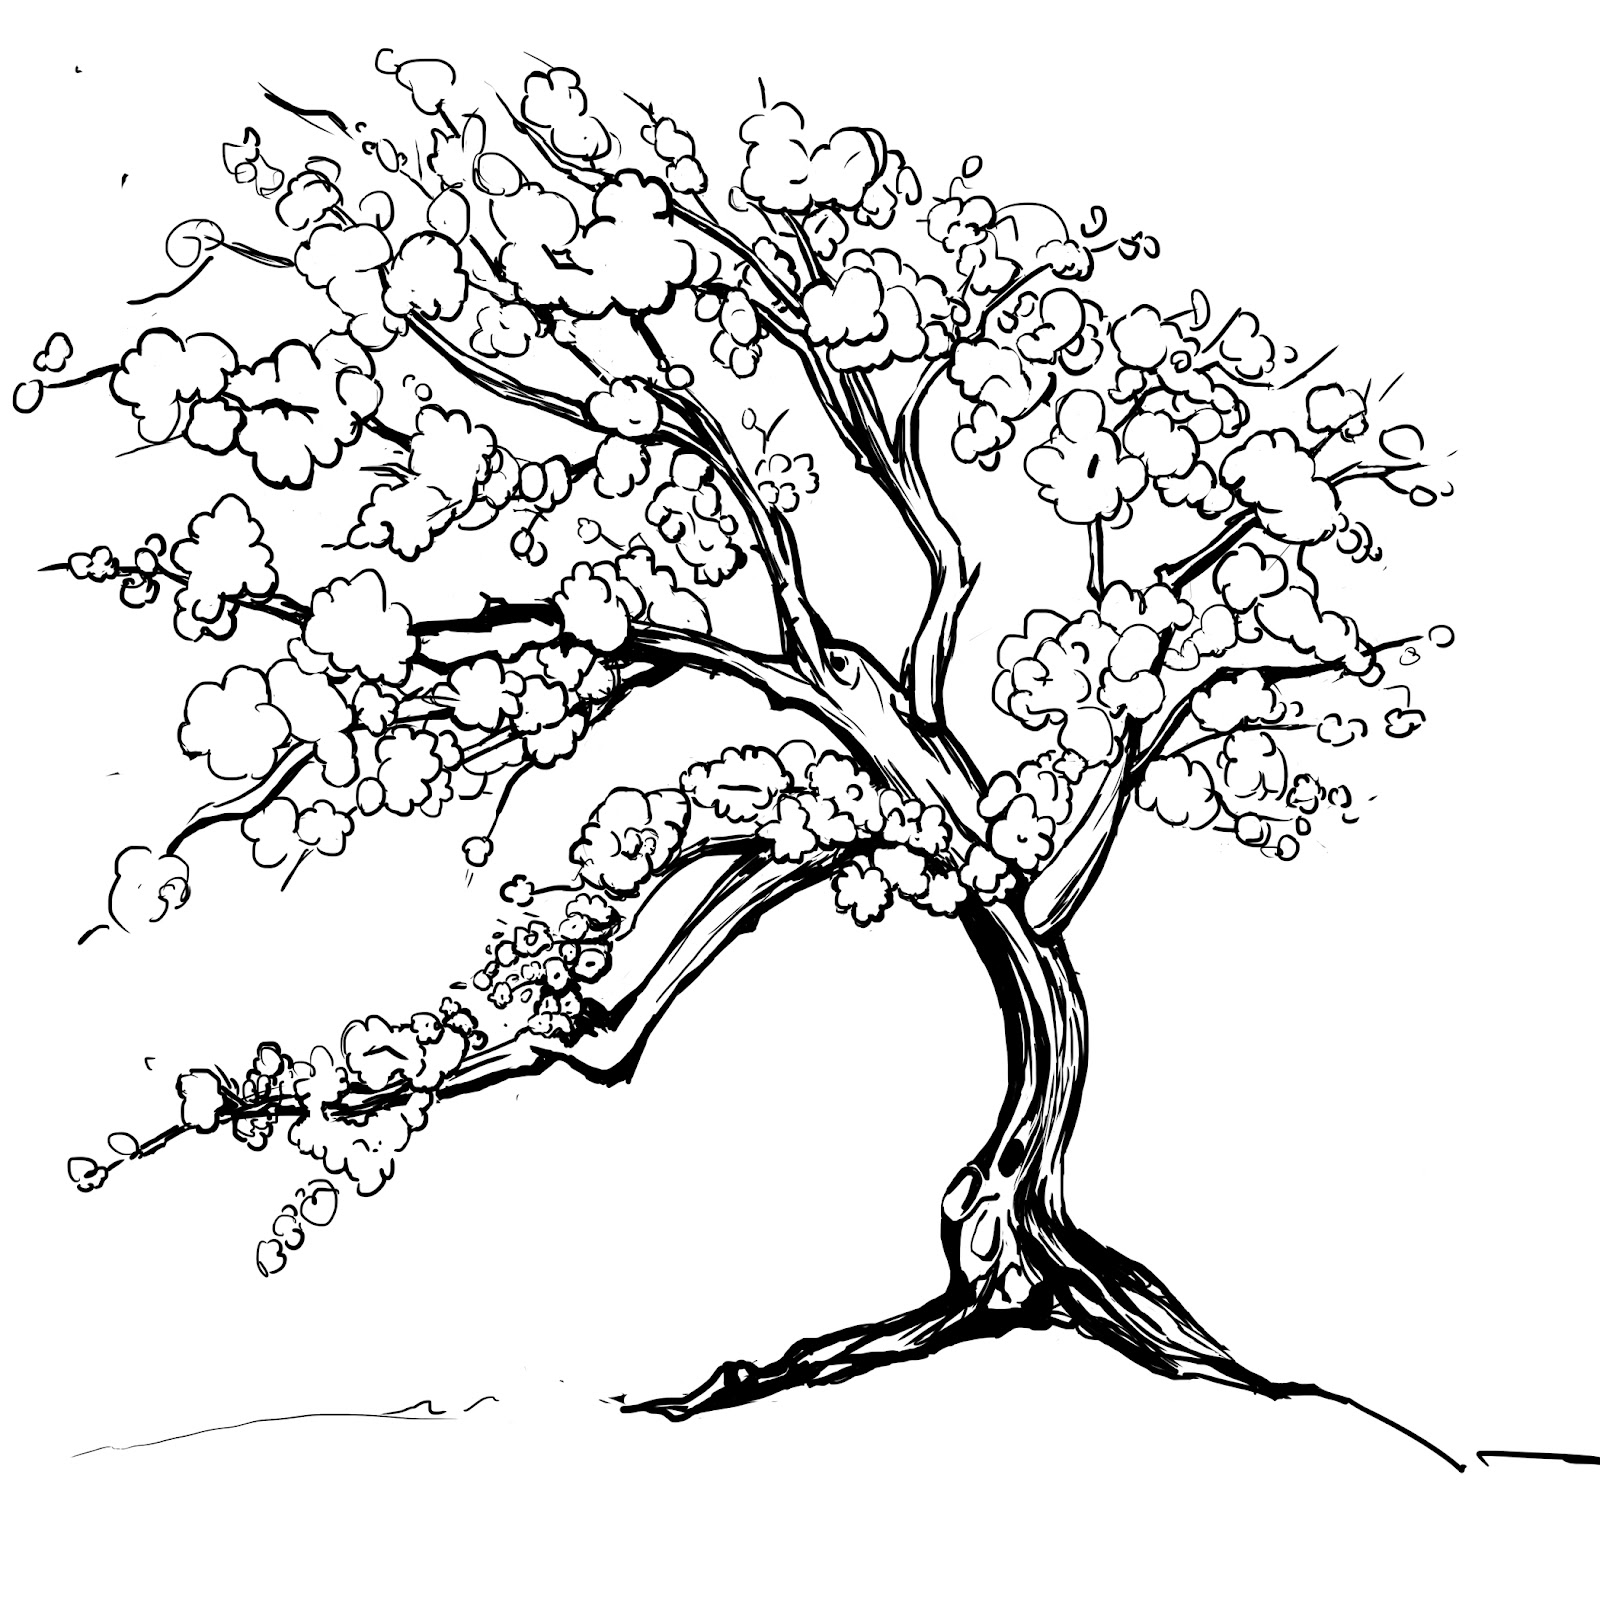 diagram the parts of cherry blossom tree bmw e60 radio wiring black and white japanese drawing